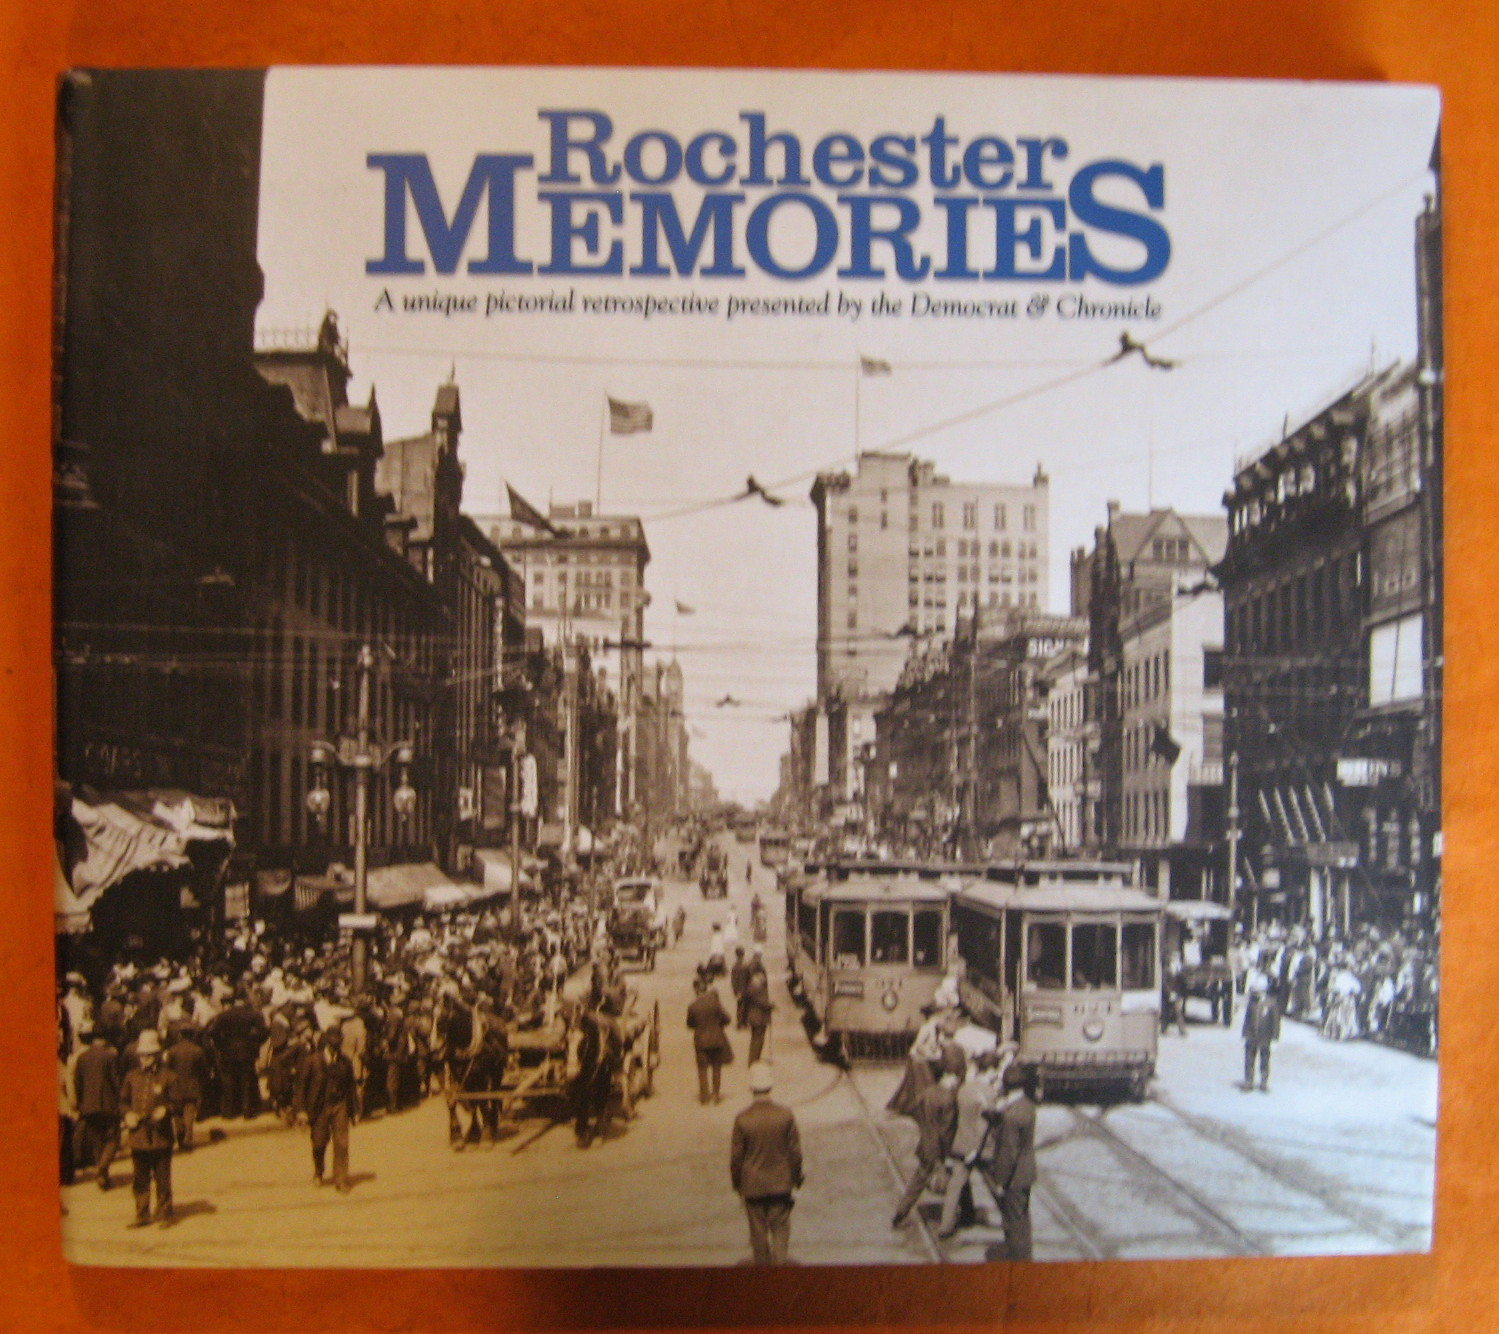 Rochester Memories: A Unique Pictorial Retrospective Presented By the Democrat & Chronicle